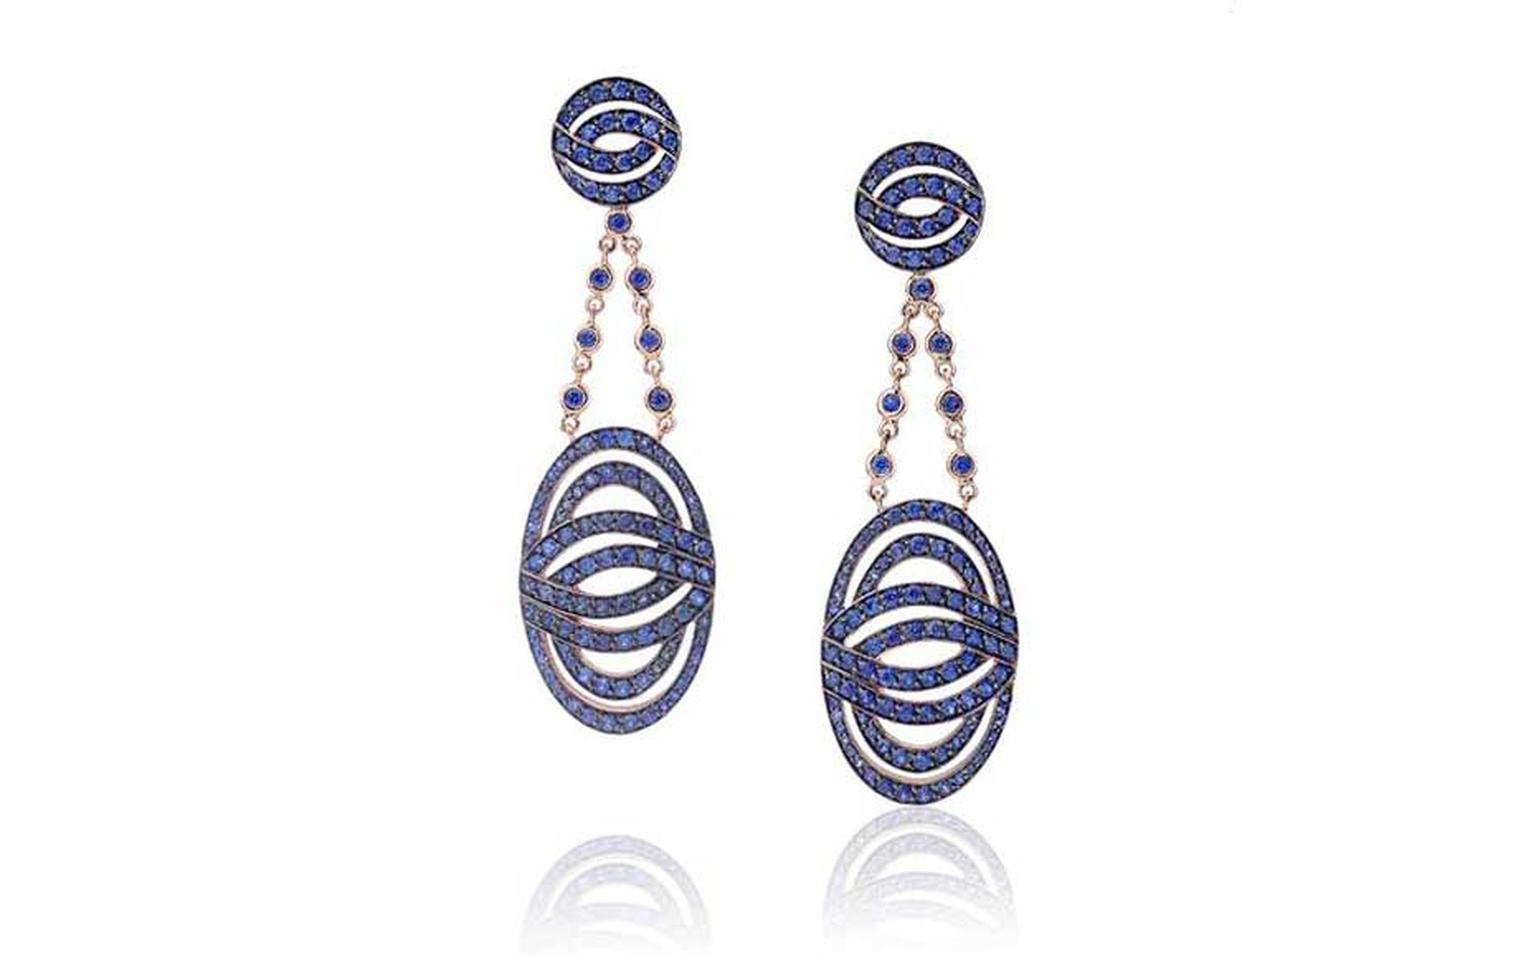 Lily Gabriela earrings in white gold, pavéd with blue sapphires, from the Collection IV.